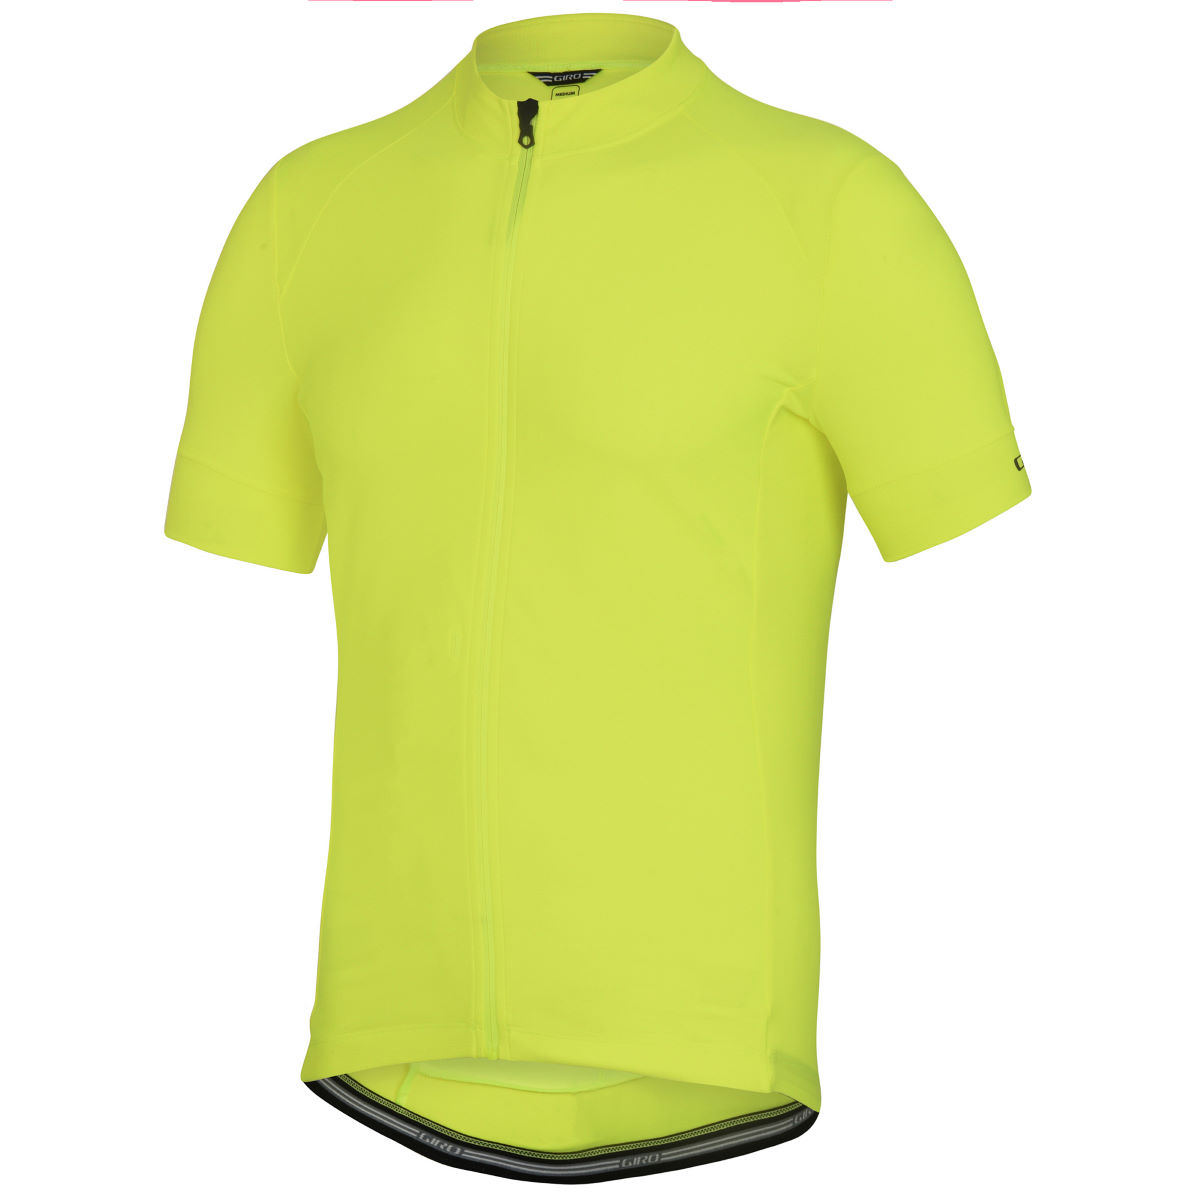 Maillot Giro Chrono Sport - S Jaune Maillots vélo à manches courtes